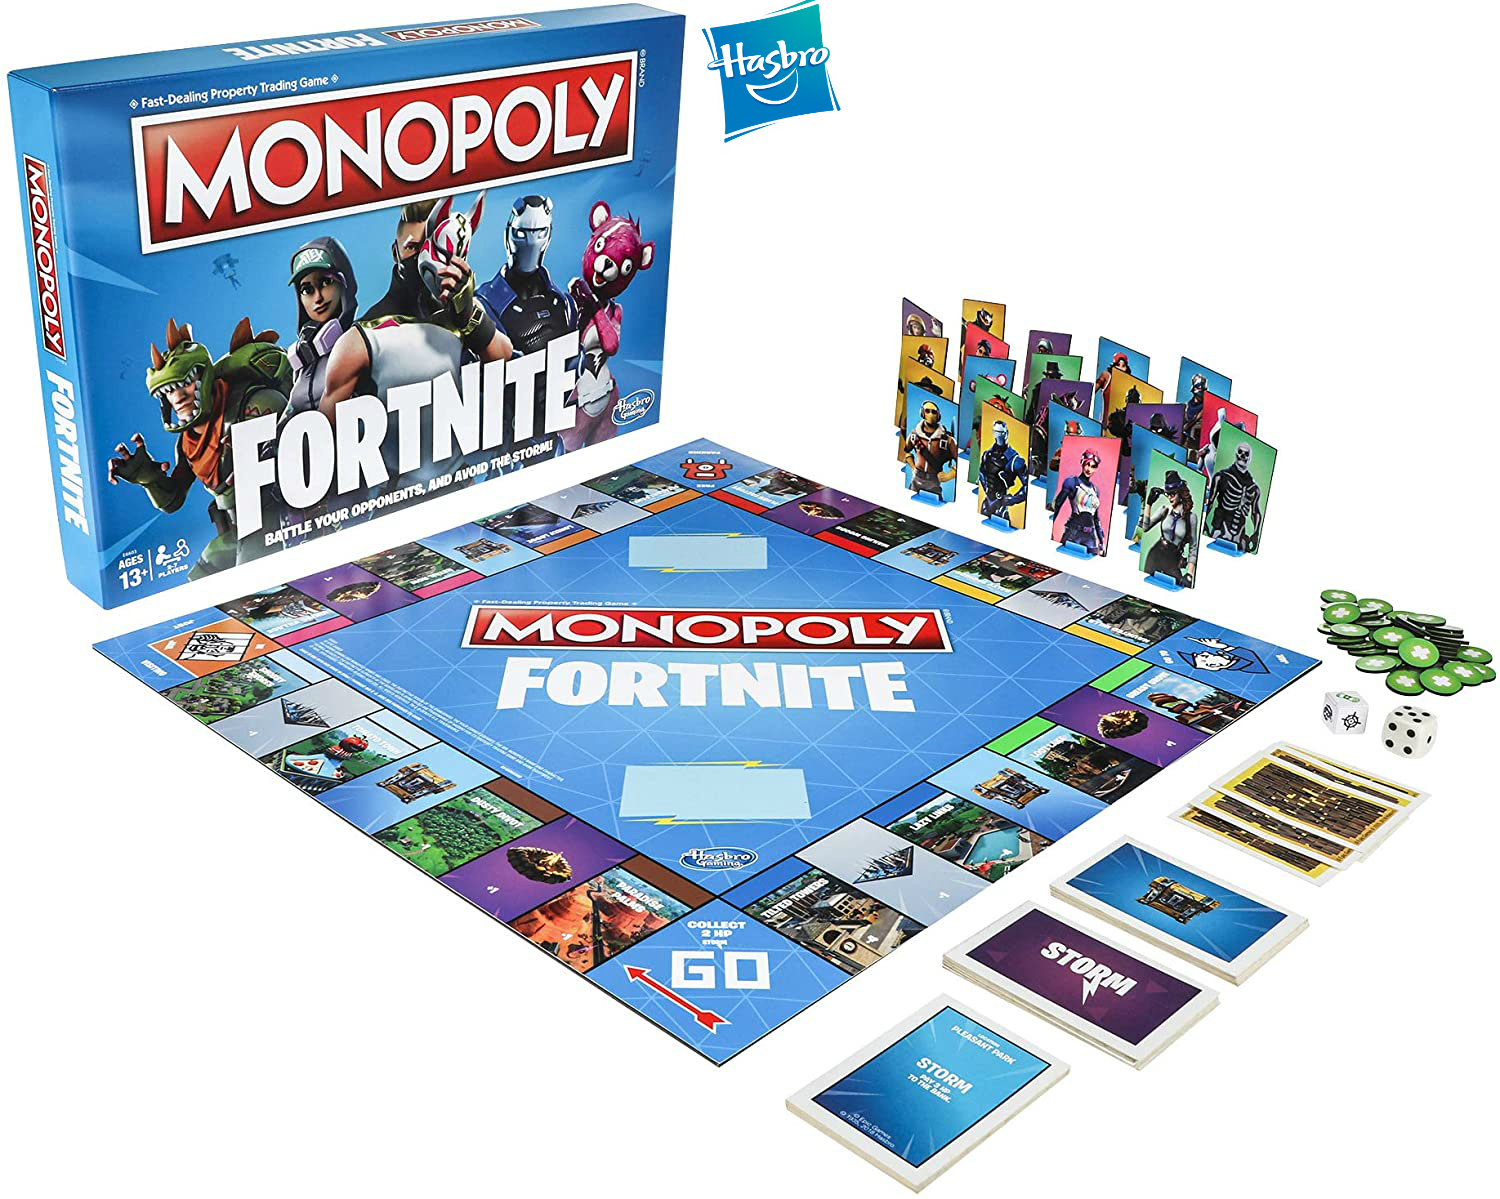 Hasbro Monopoly Fortnite Game of Board game inspired by fortrite Monopoly Fortress night millionaire board game Party toys